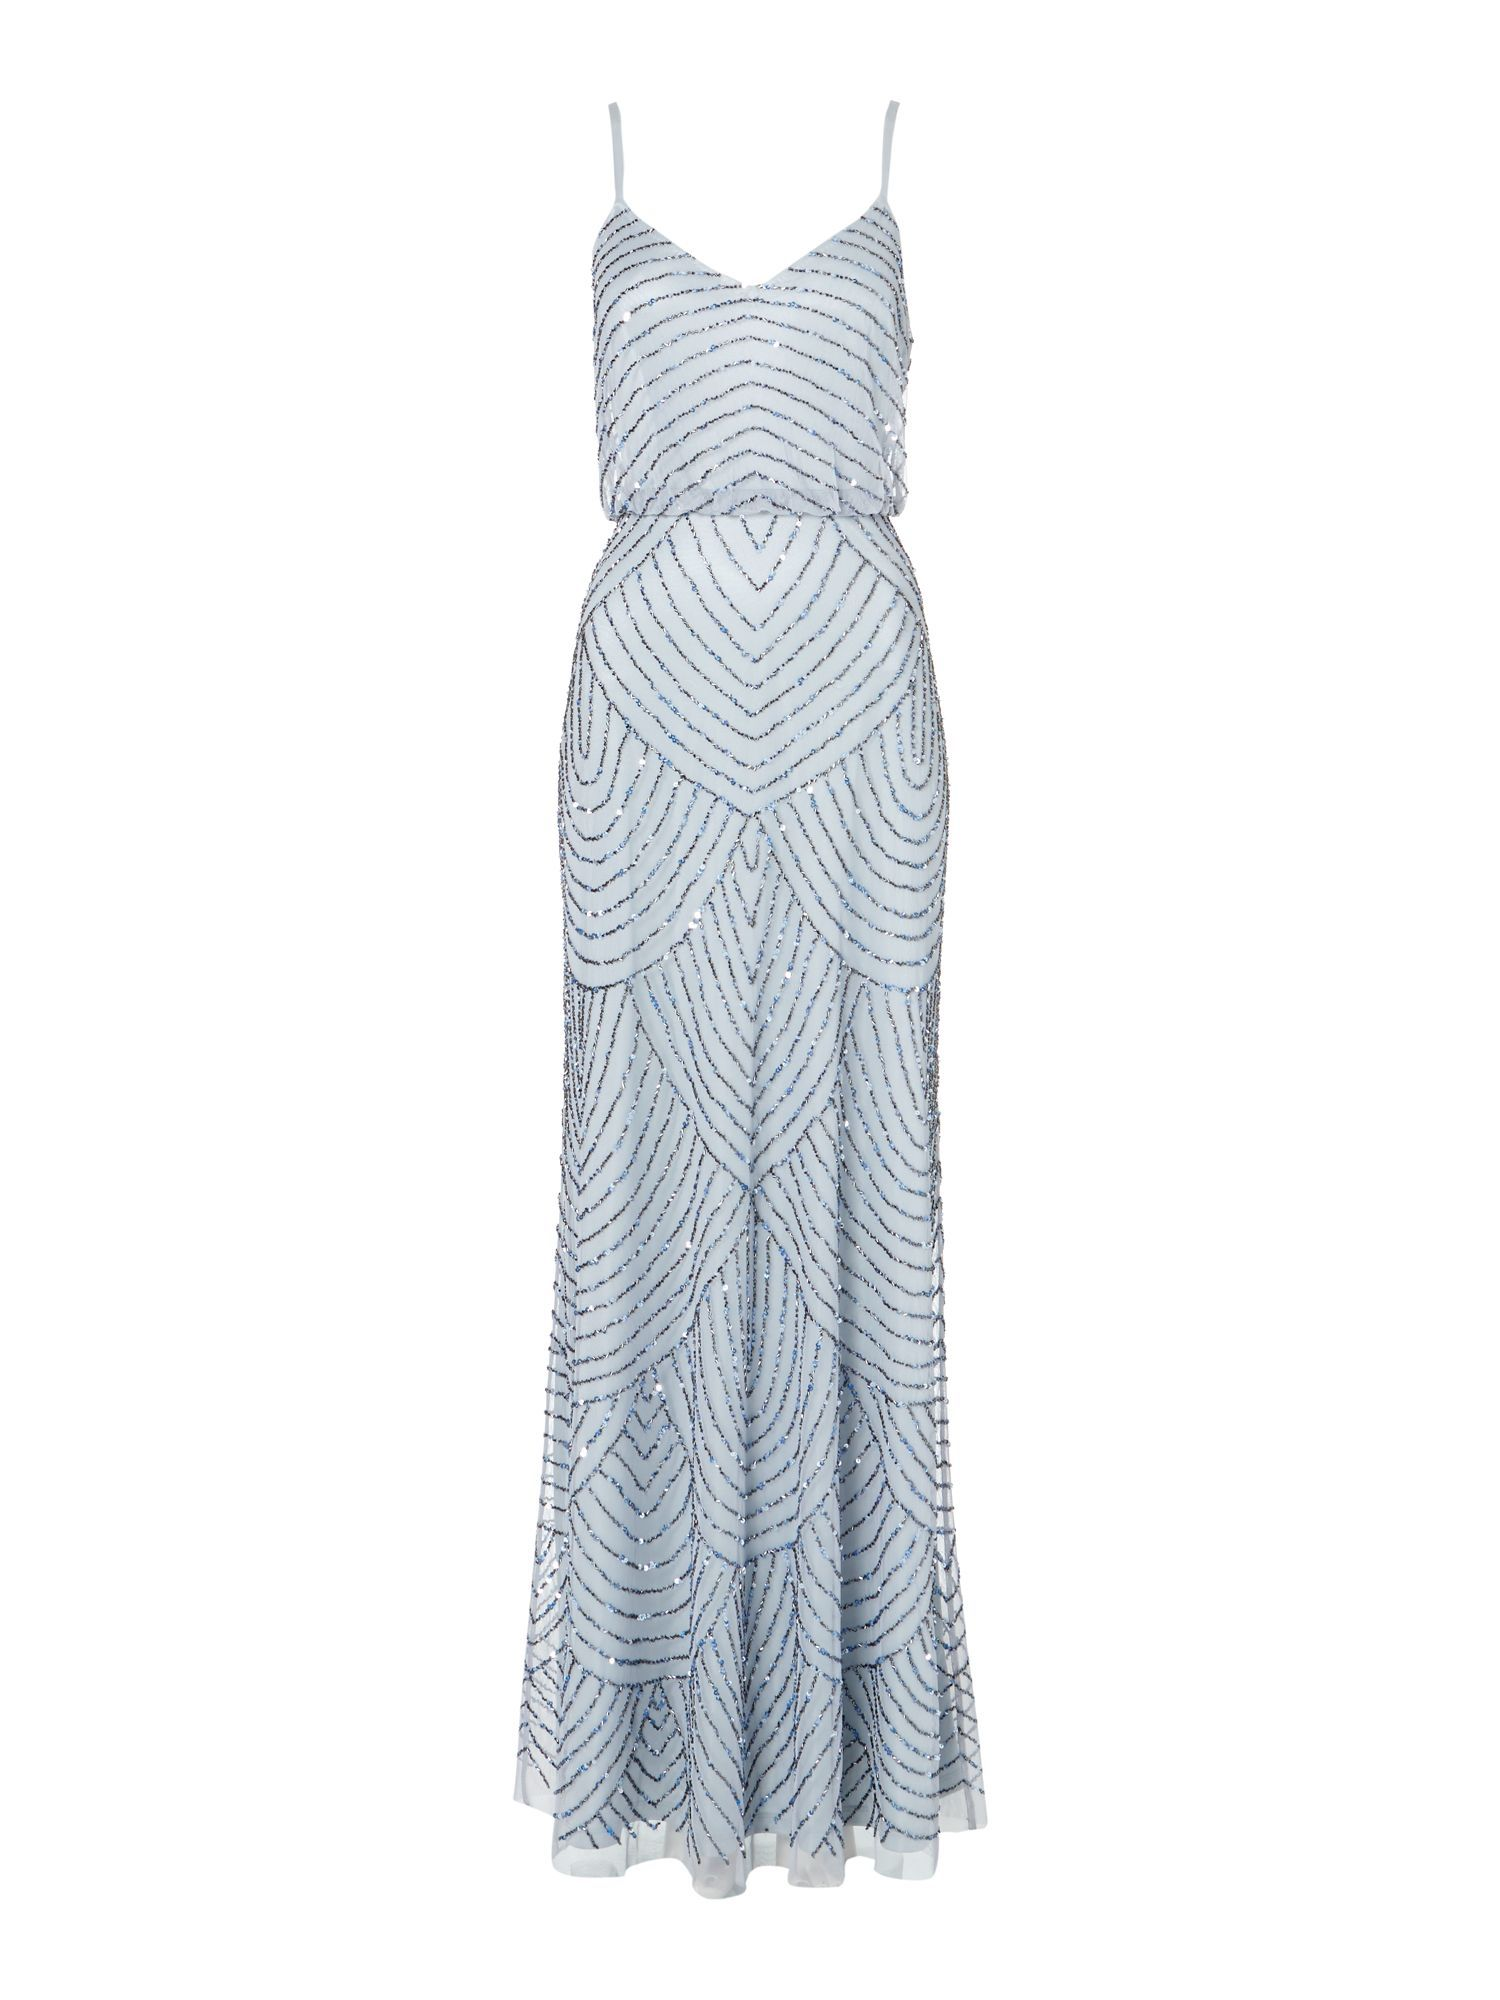 1920s style dresses uk great gatsby to downton abbey 1920s 1920s style dresses uk day to evening gatsby to downton abbey ombrellifo Image collections